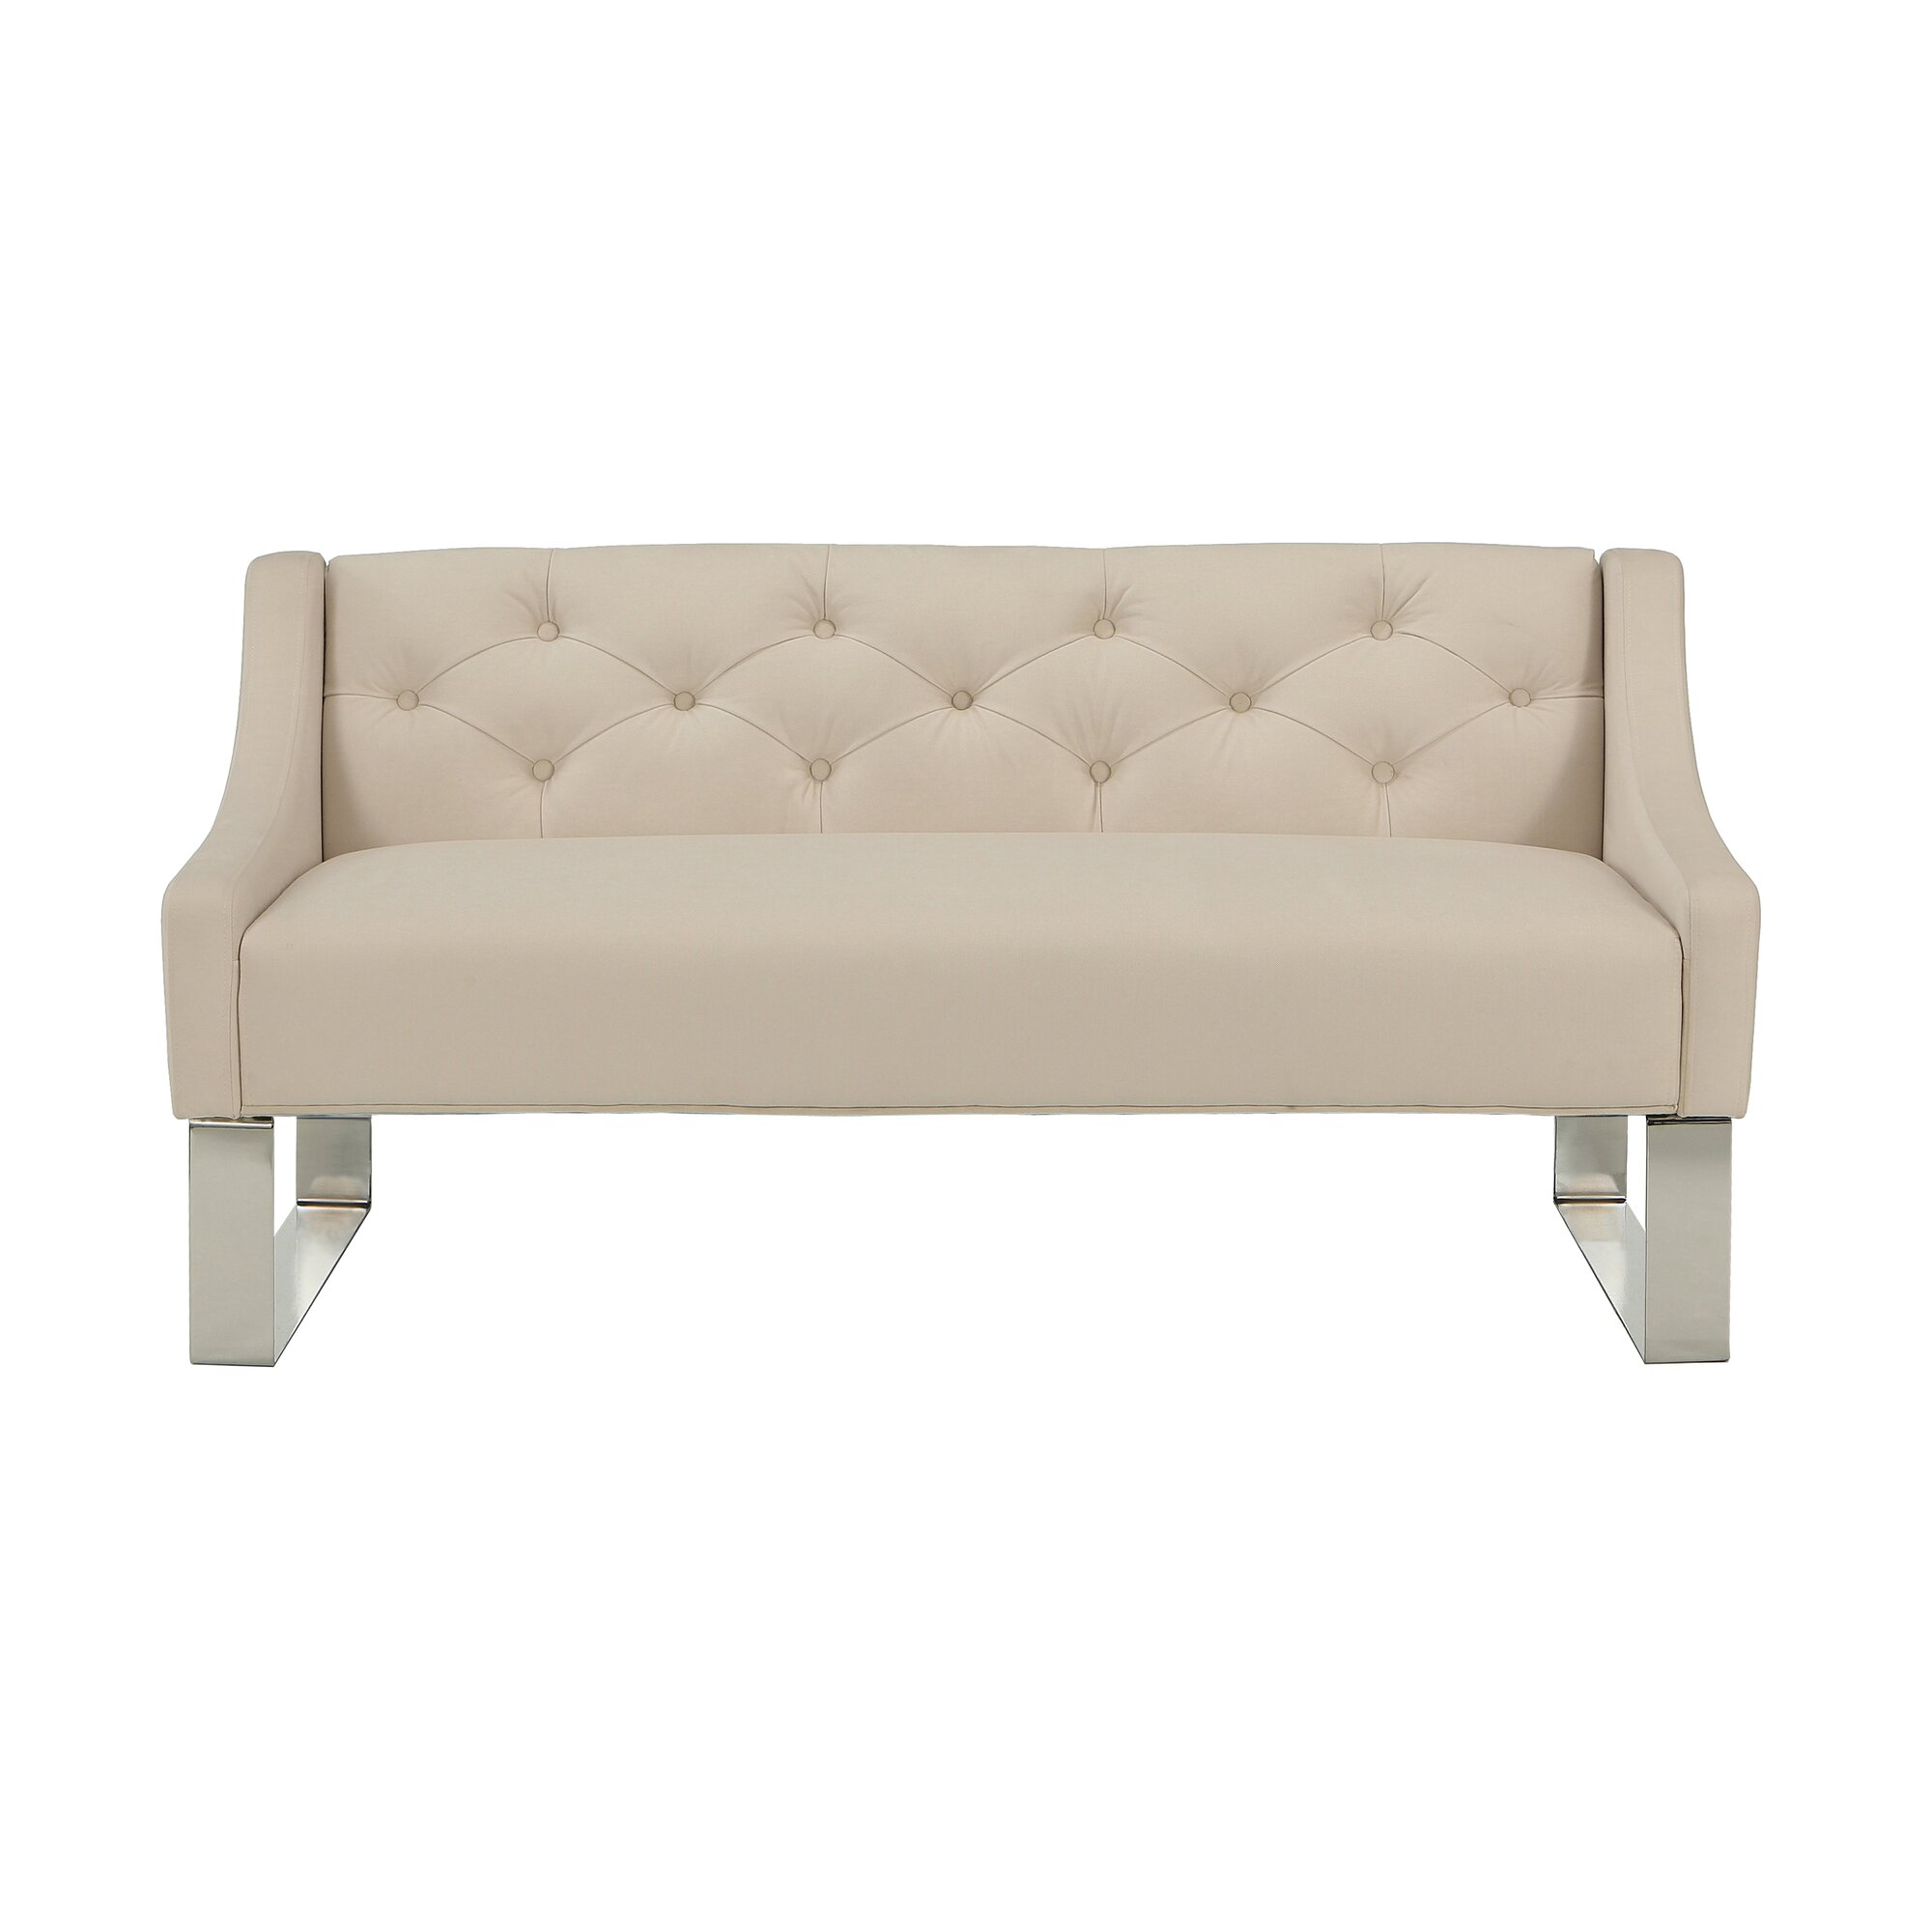 Bedroom bench with arms - Upholstered Bedroom Bench